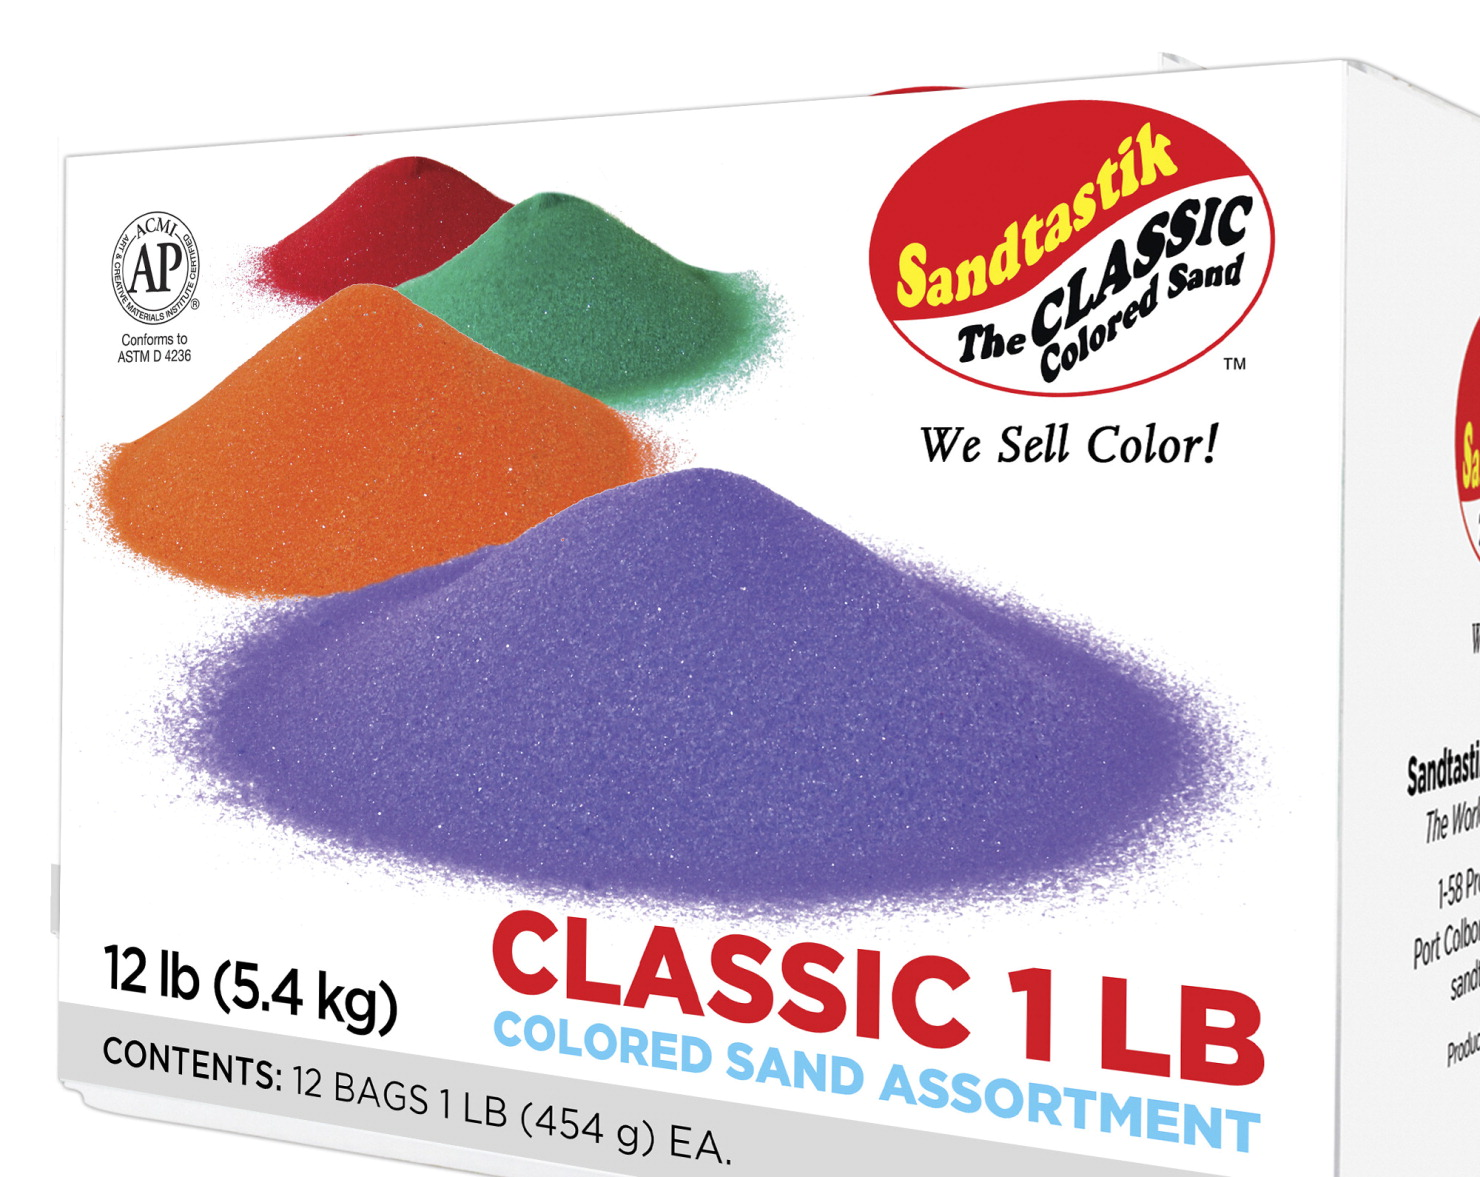 Sandtastik Colored Sand Classroom Pack 1 Pound Bags Assorted Colors Set Of 12